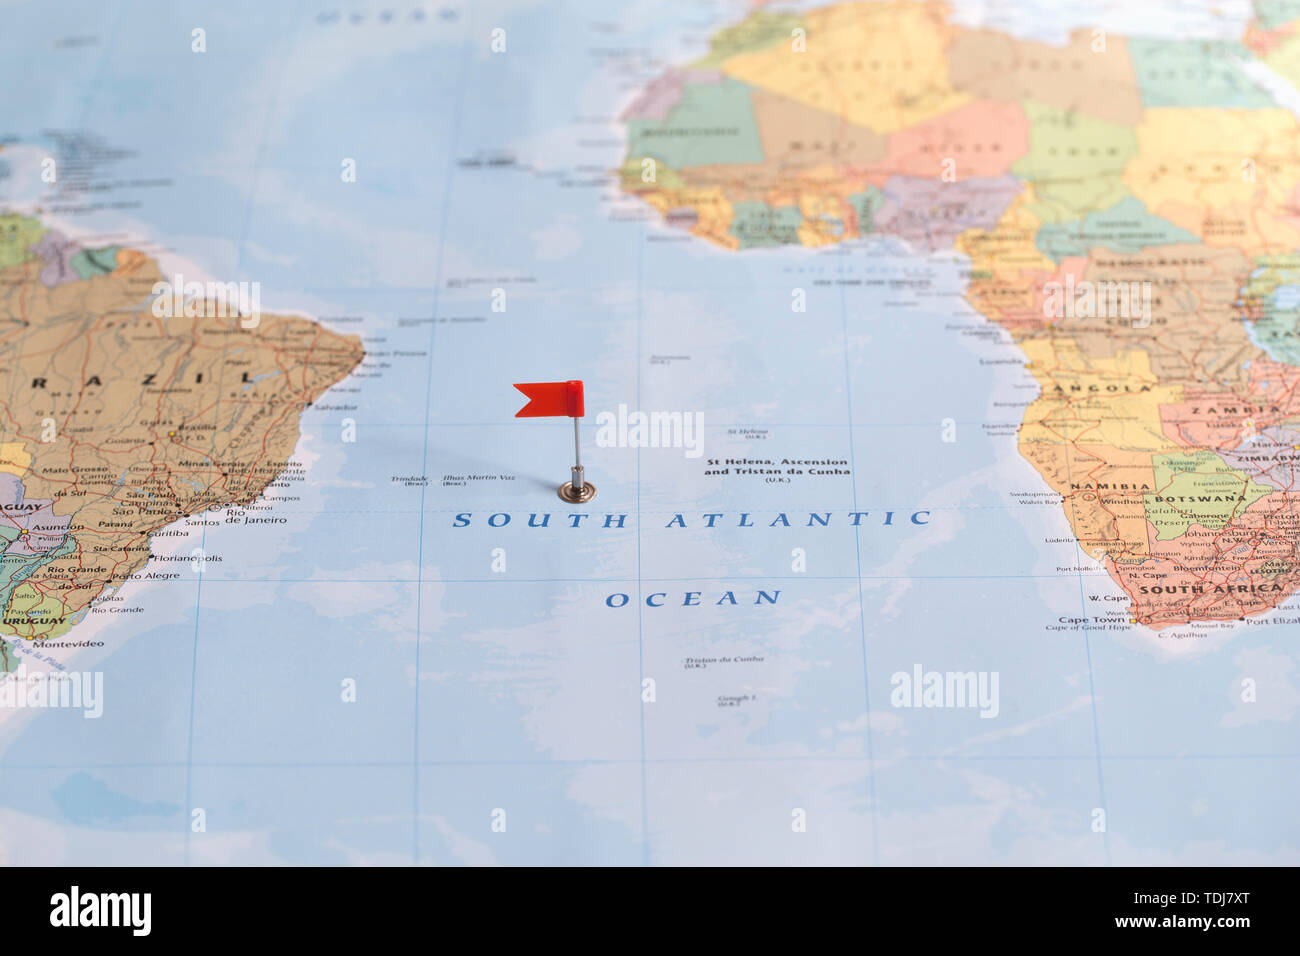 South Atlantic Ocean Map High Resolution Stock Photography And Images Alamy